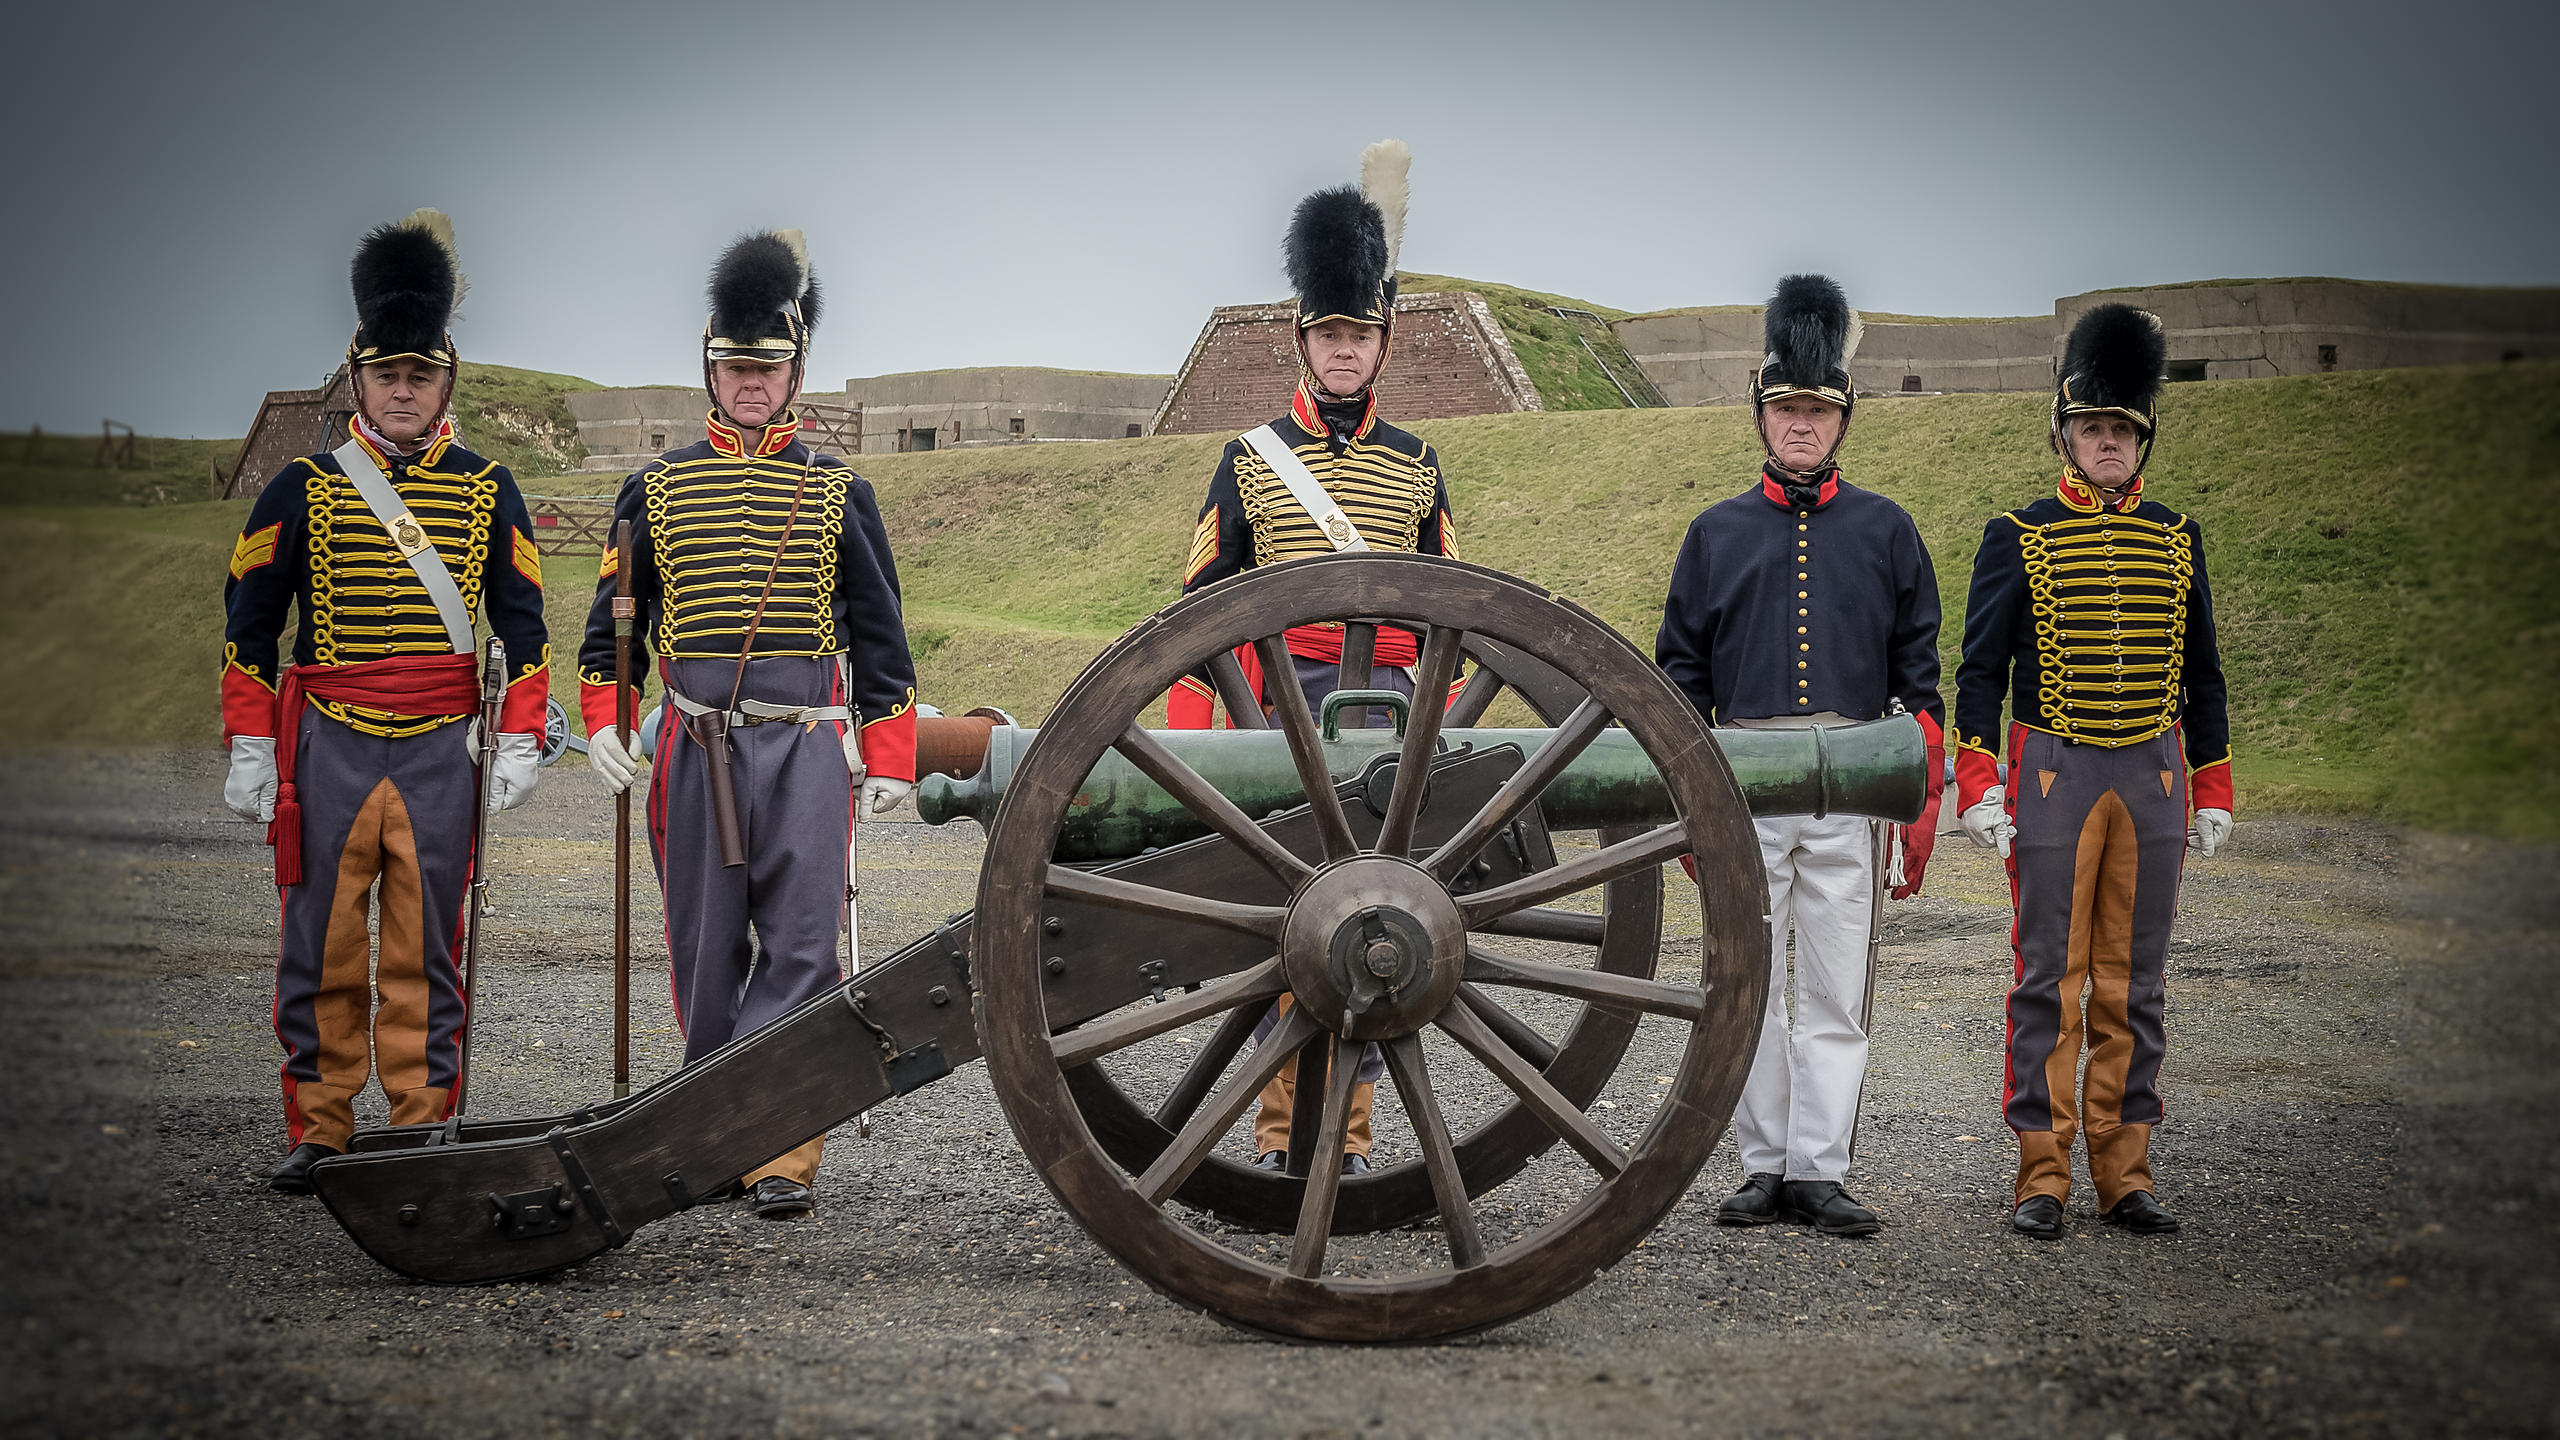 Napoleonic Battle Re-Enactors Firing Cannon at Fort Nelson, Hampshire